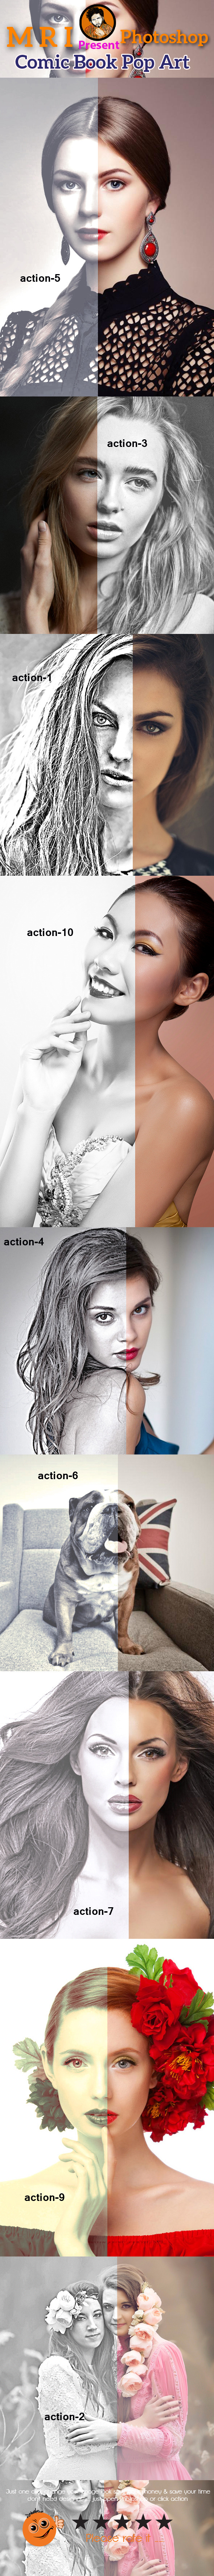 B&W HDR Action - Actions Photoshop